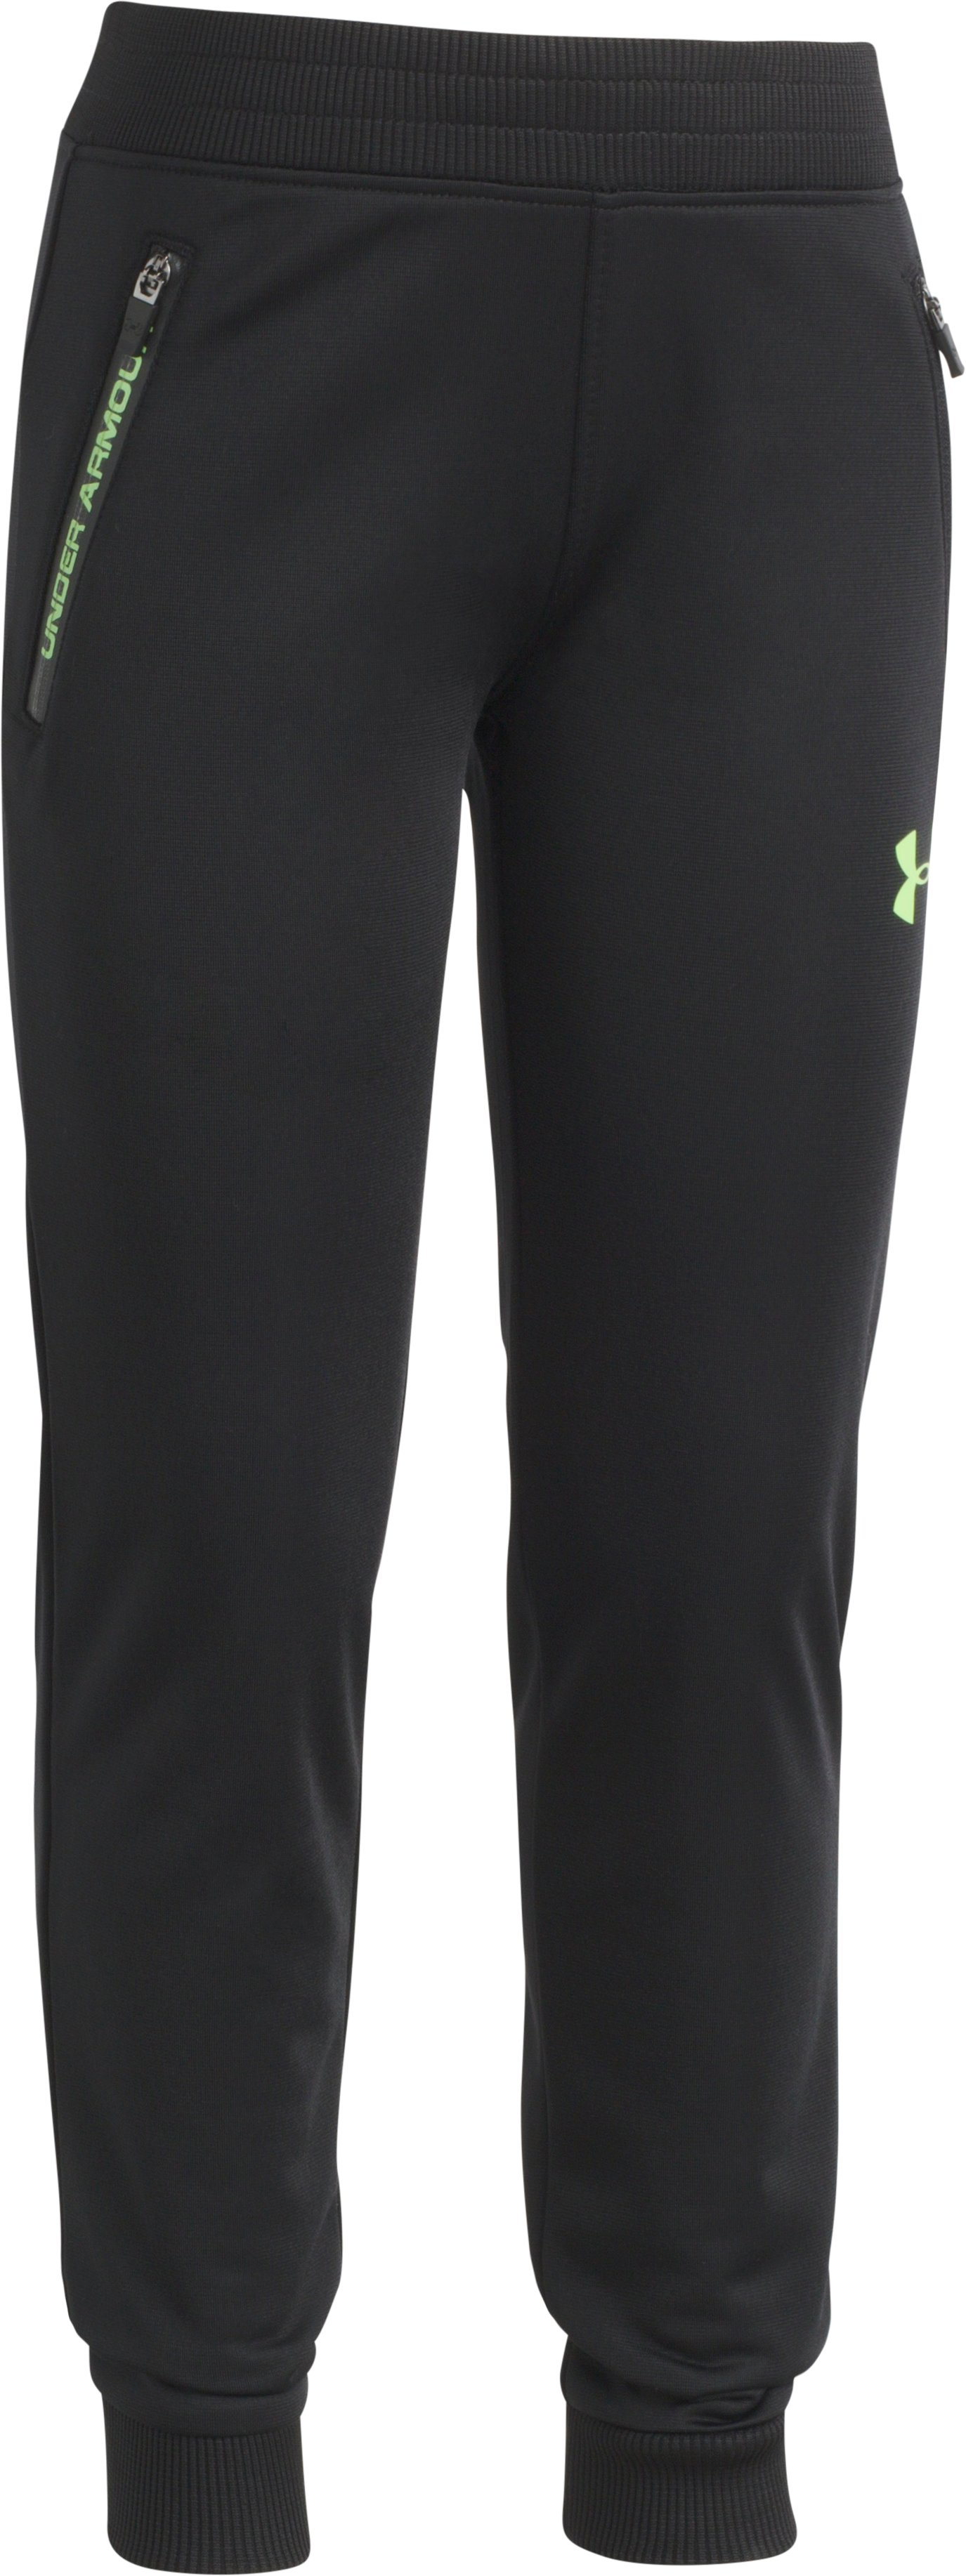 Boys' Toddler UA Pennant 2.0 Tapered Pants, Black , Laydown